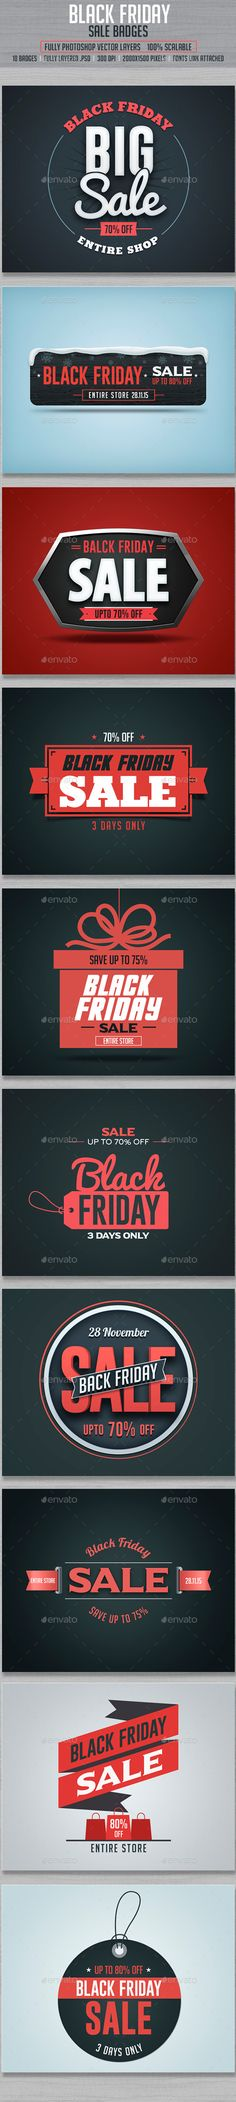 Black Friday Sale Badges  — PSD Template #ribbon #holiday • Download ➝ https://graphicriver.net/item/black-friday-sale-badges/13423140?ref=pxcr